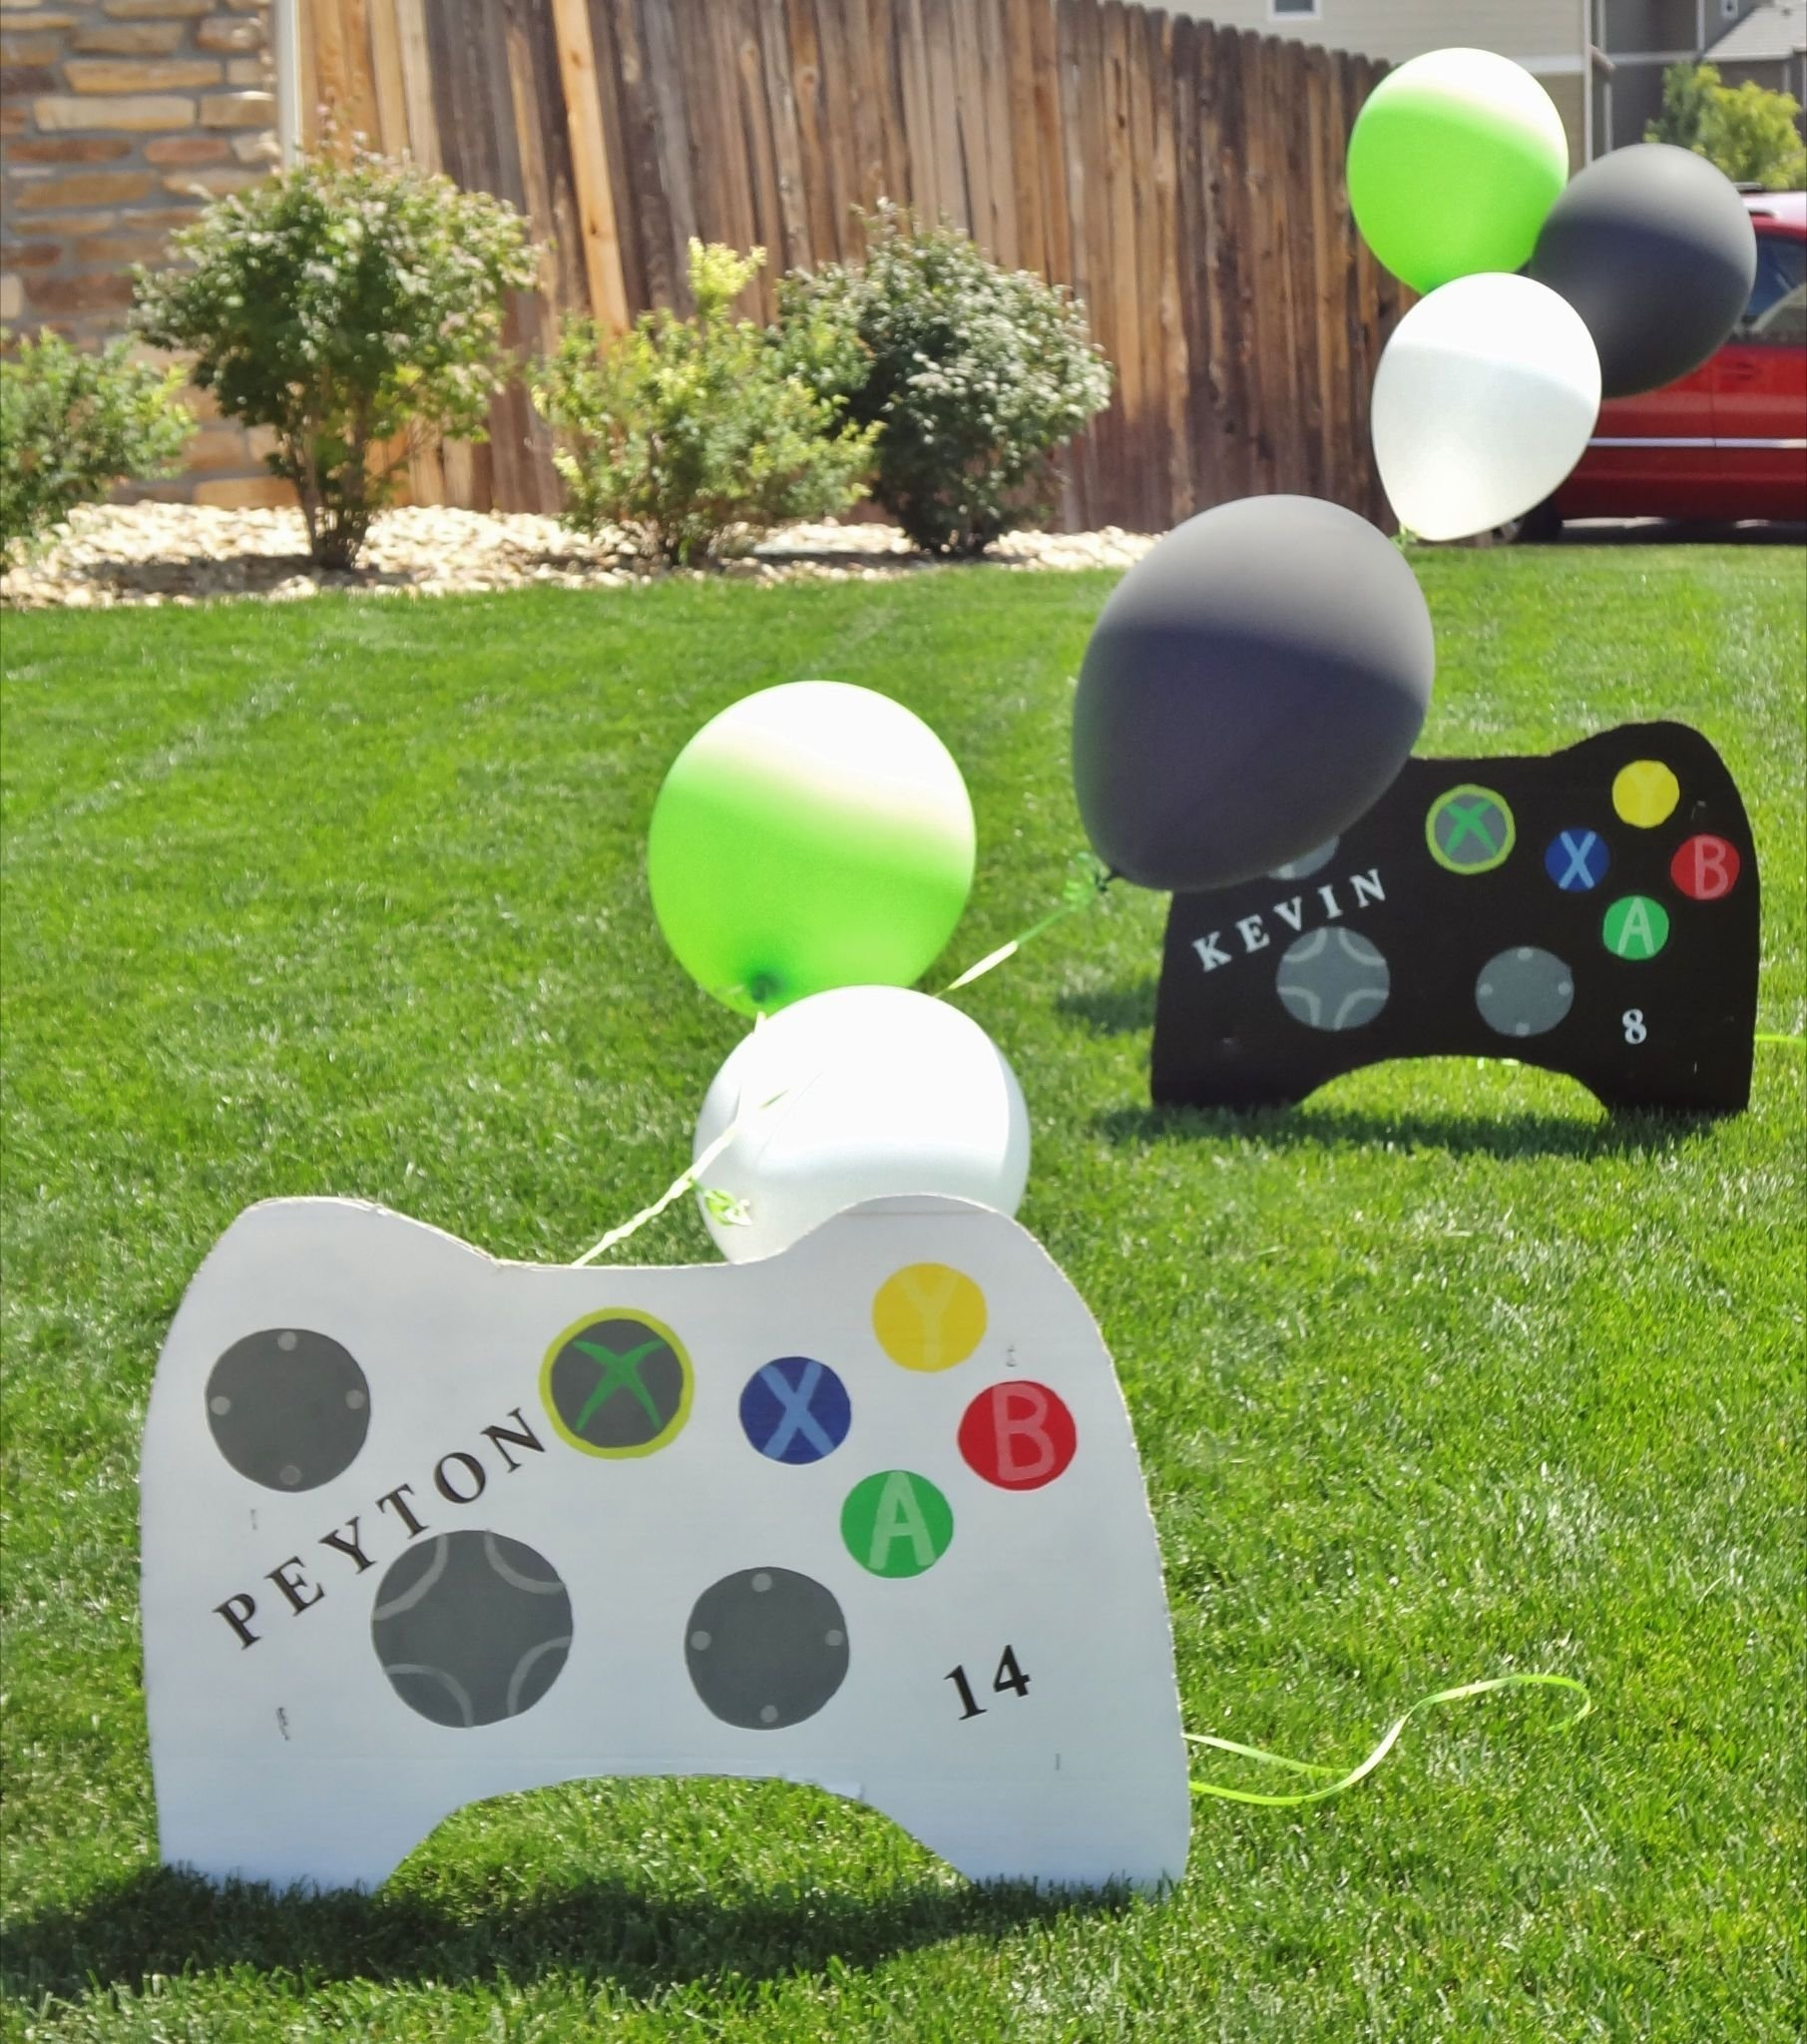 10 Lovely Video Game Birthday Party Ideas handmade lawn signs out of cardboard and spray paint peytons 2020